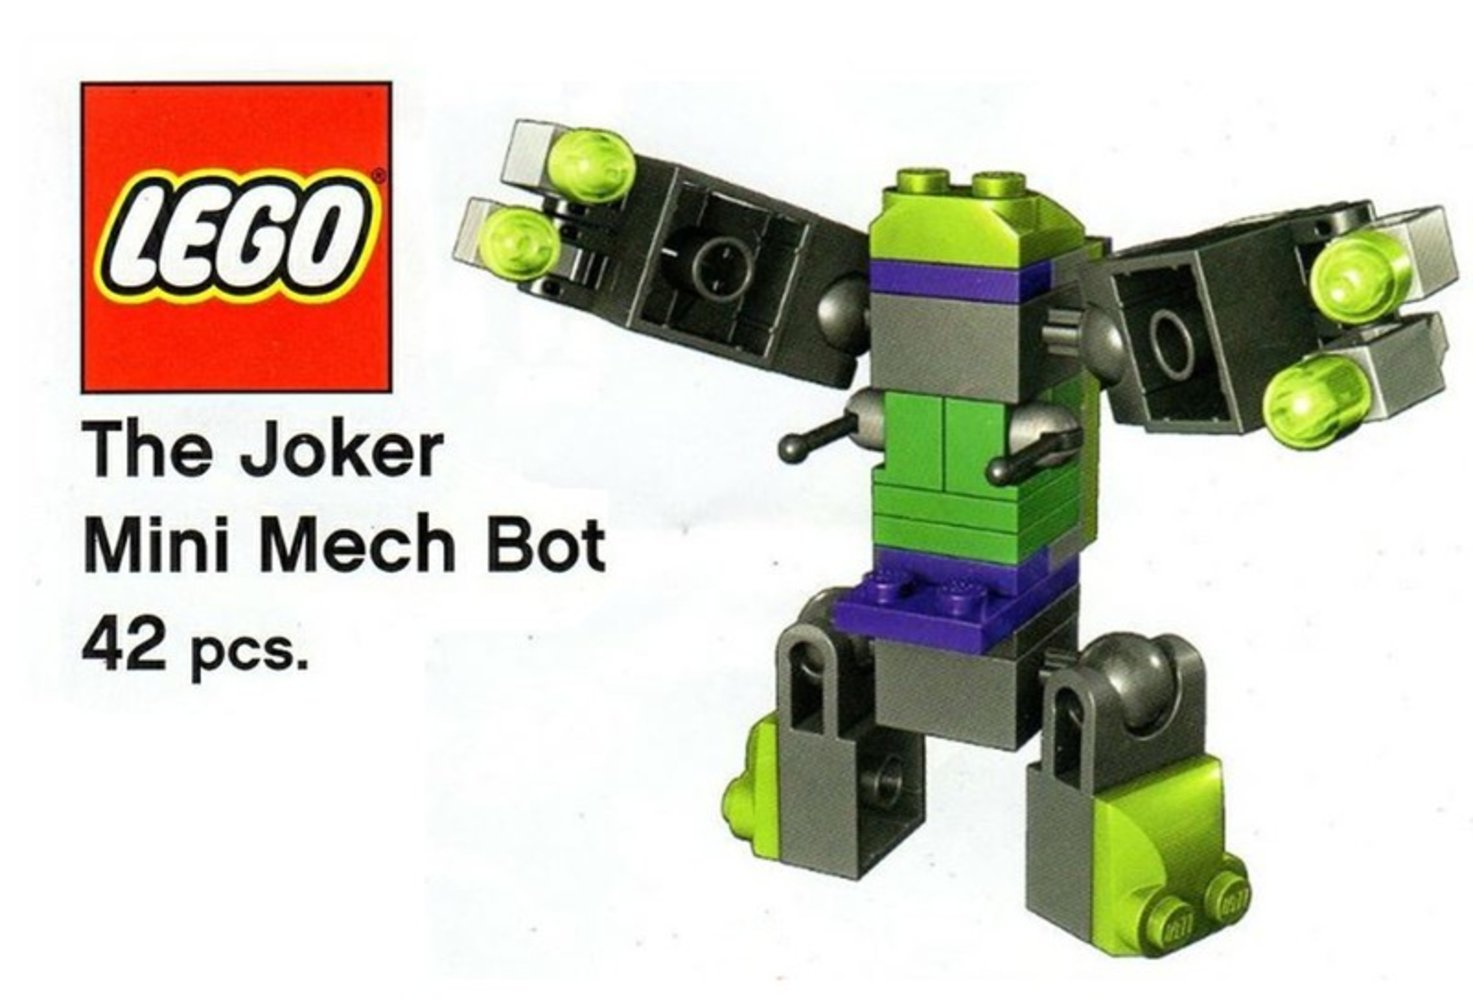 The Joker Mini Mech Bot